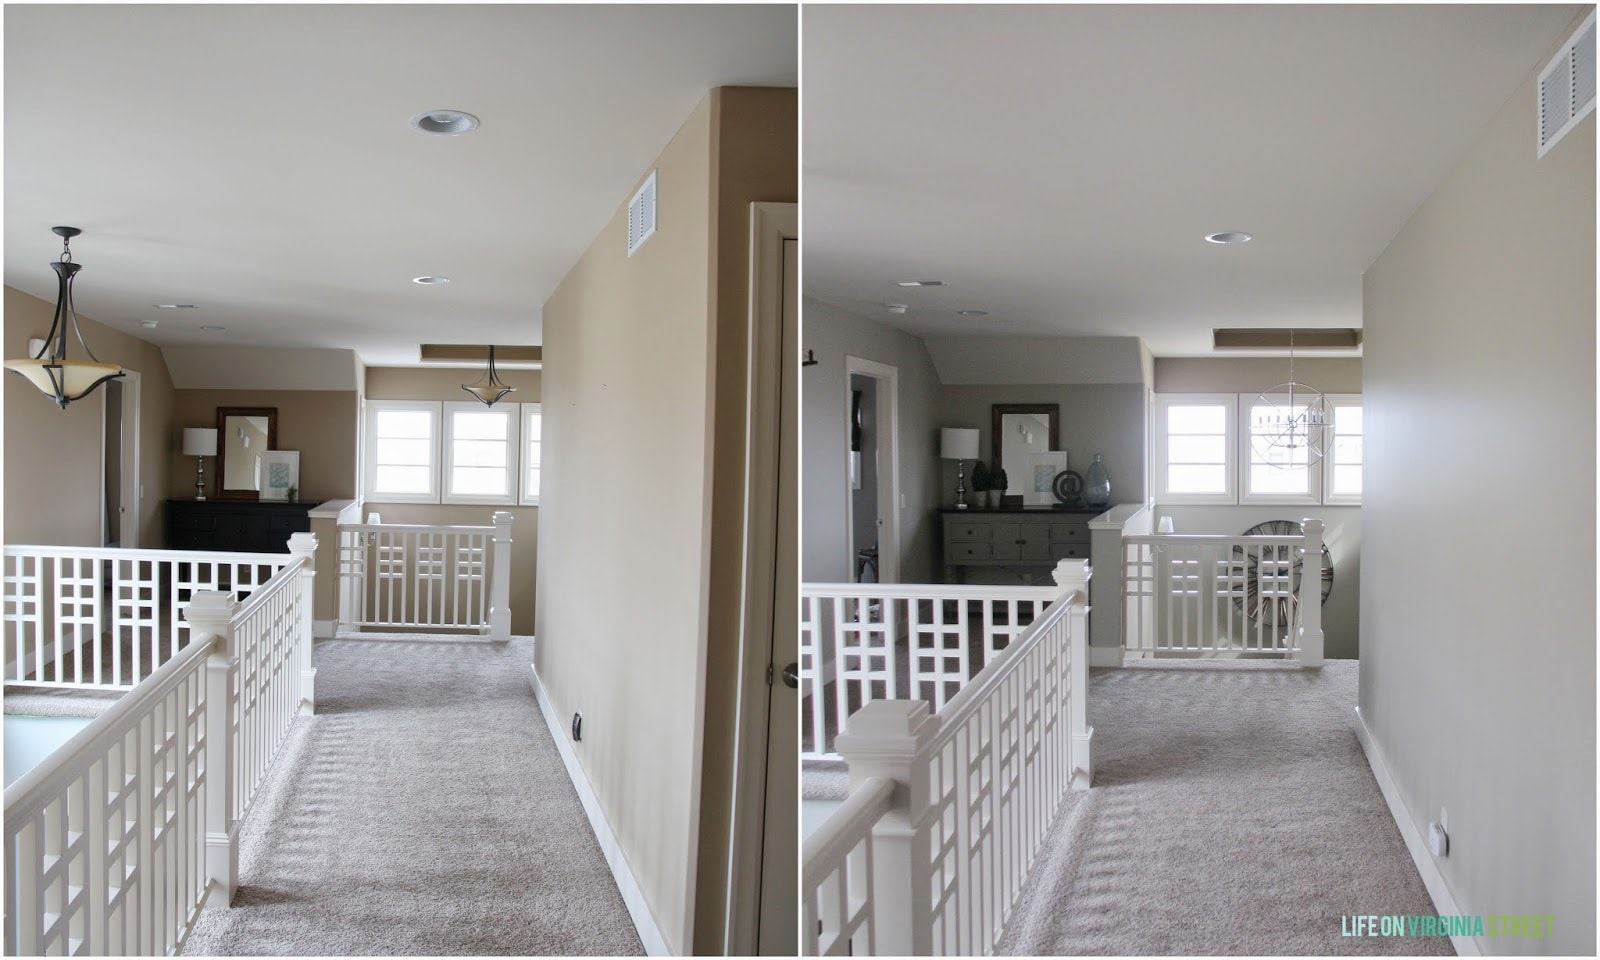 Left - before, and right - after a coat of Behr Castle path paint. Love how much lighter the space looks already.